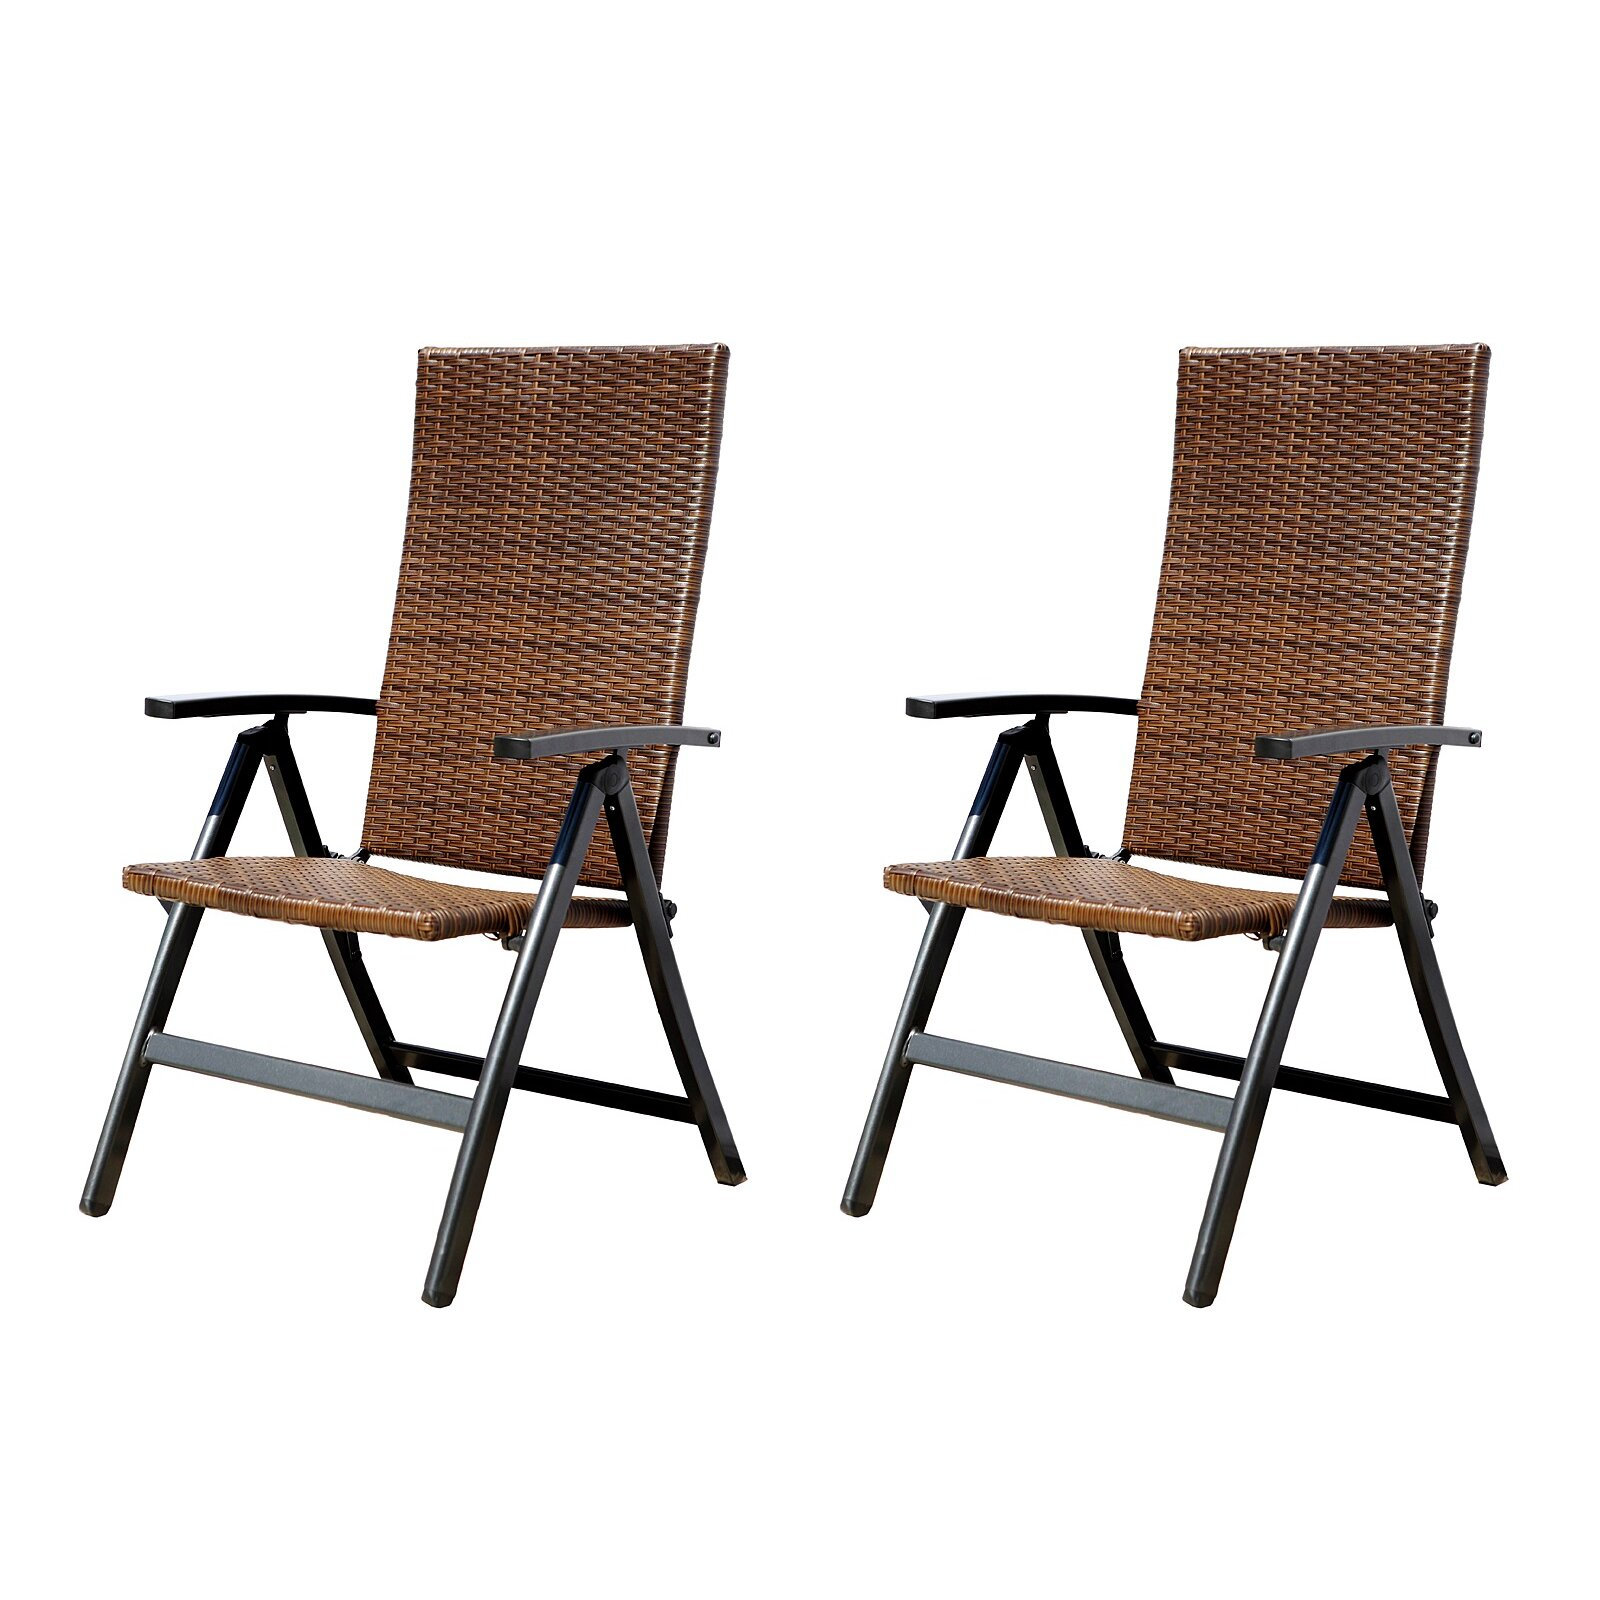 fashions hand woven polyethylene wicker outdoor reclining lounge chair